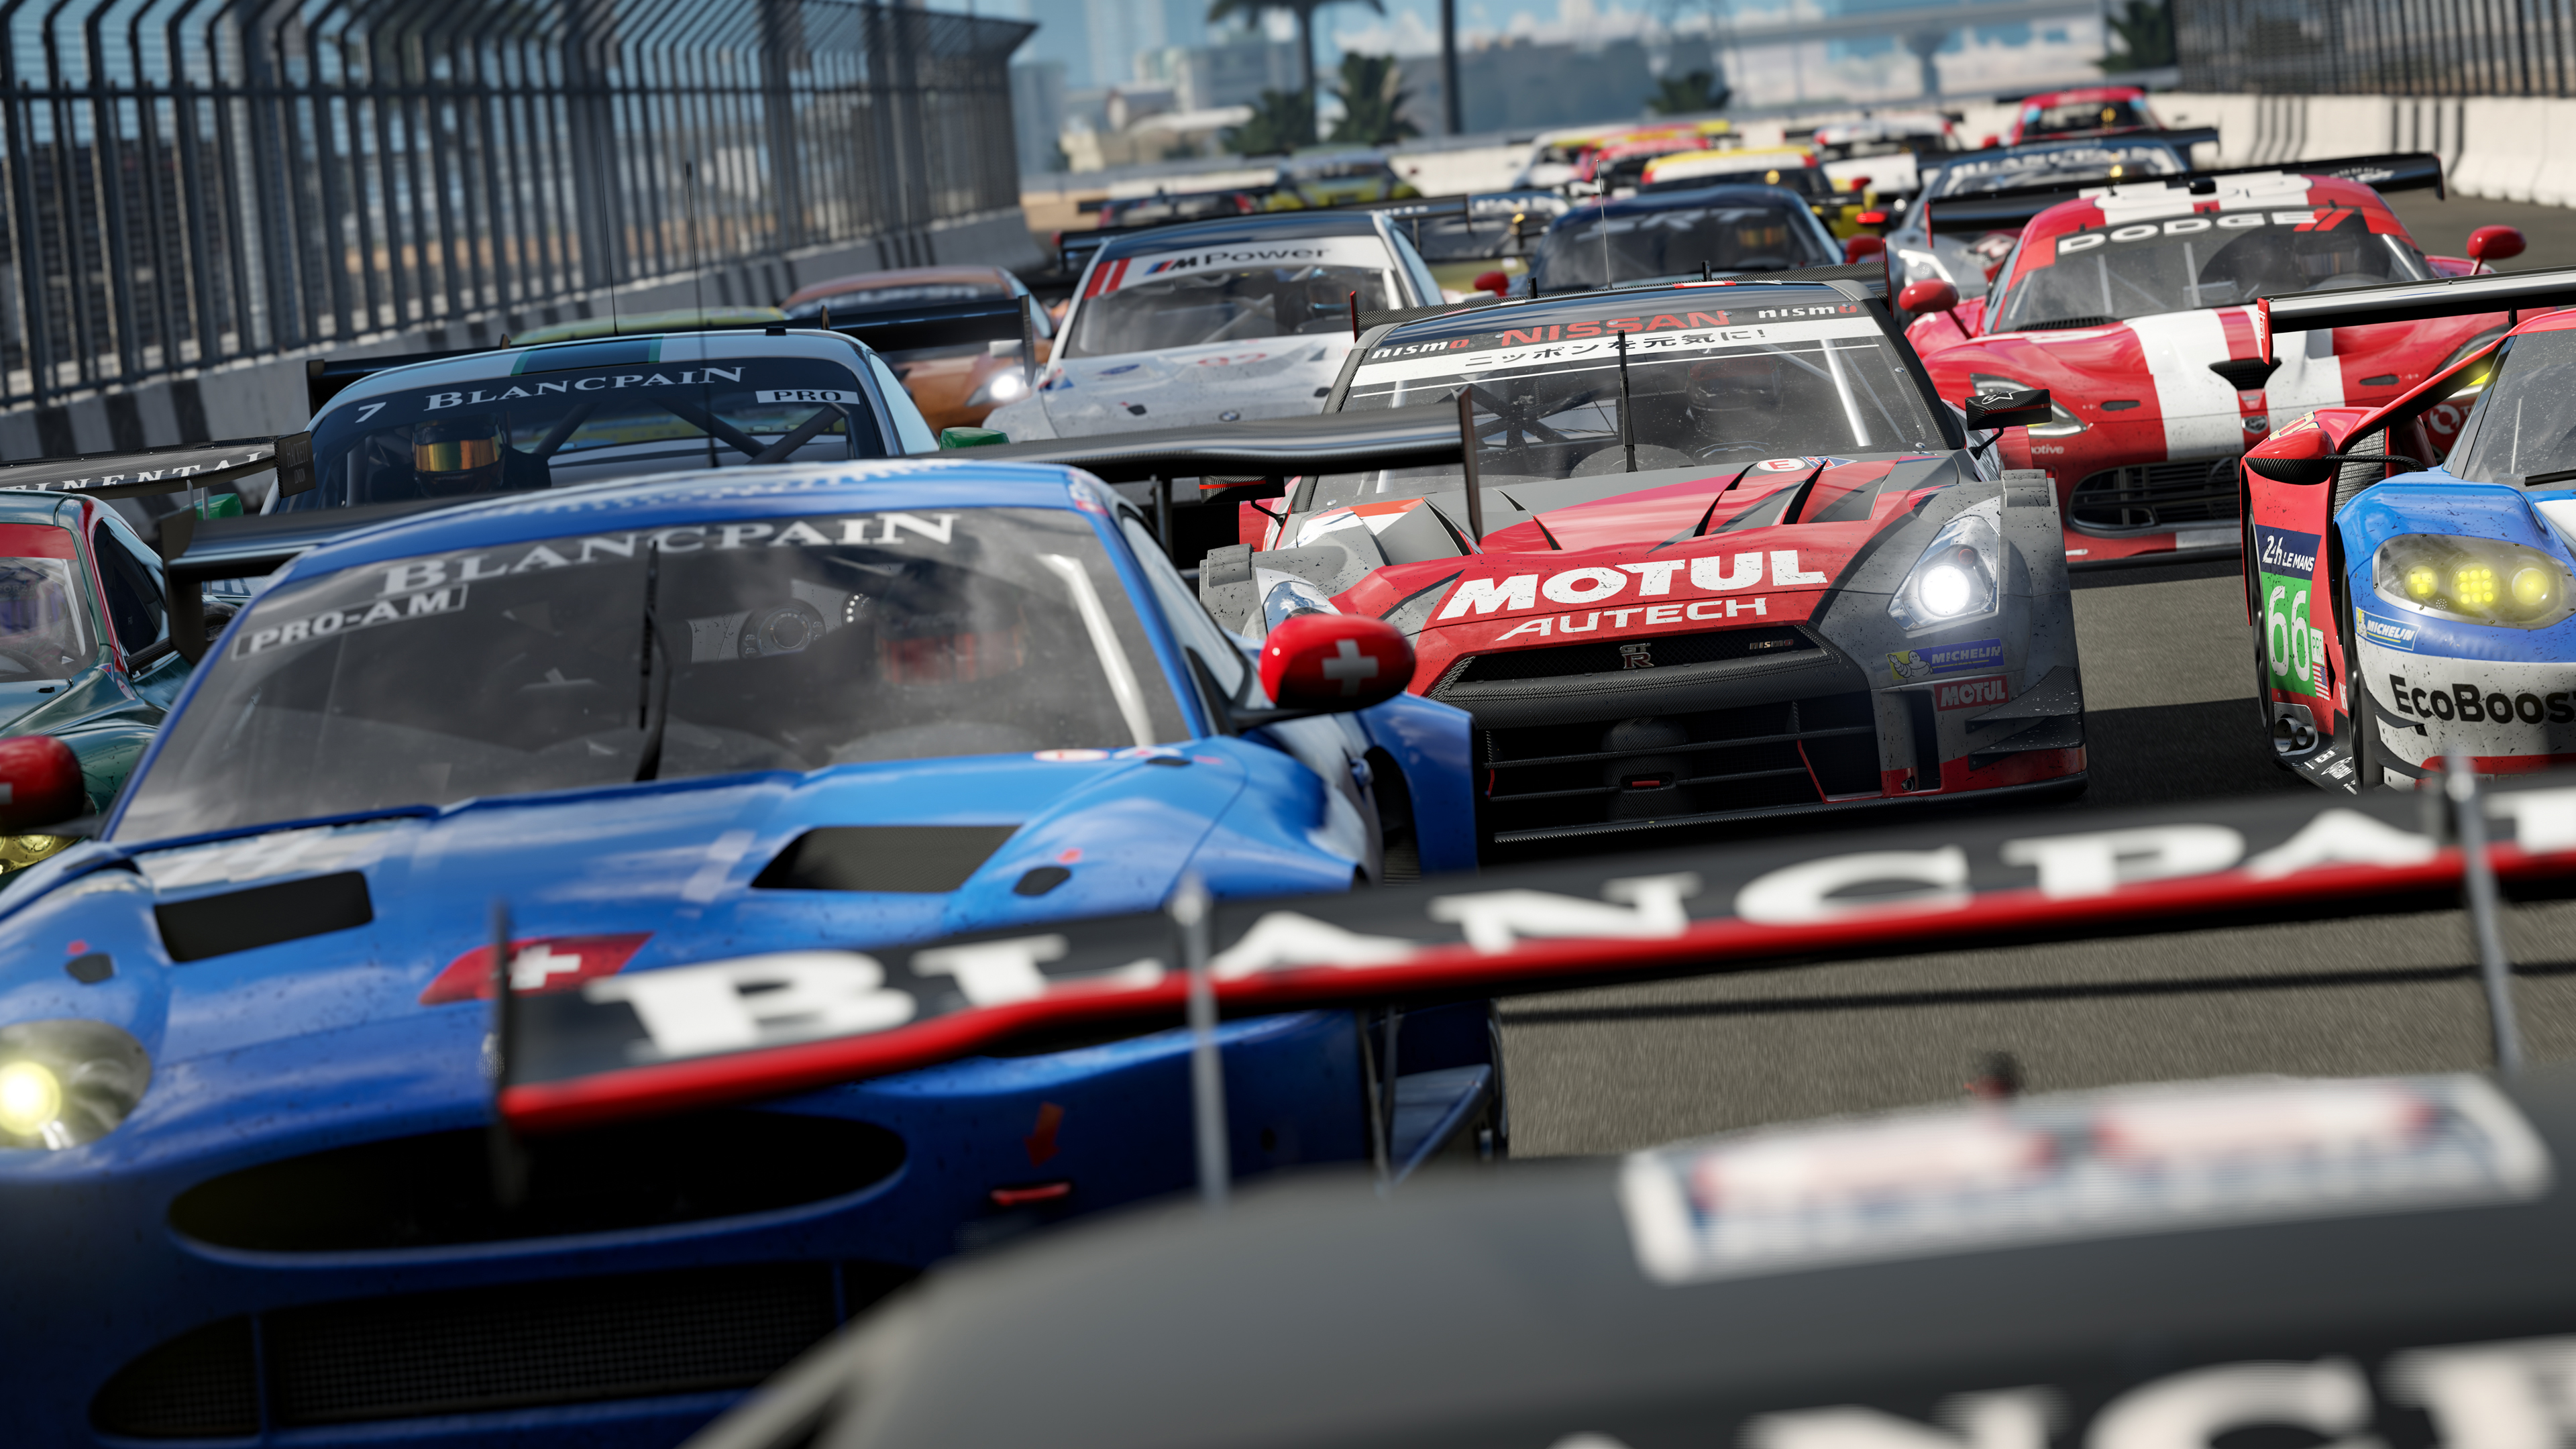 League multiplayer lobbies headline Forza Motorsport 7's December update